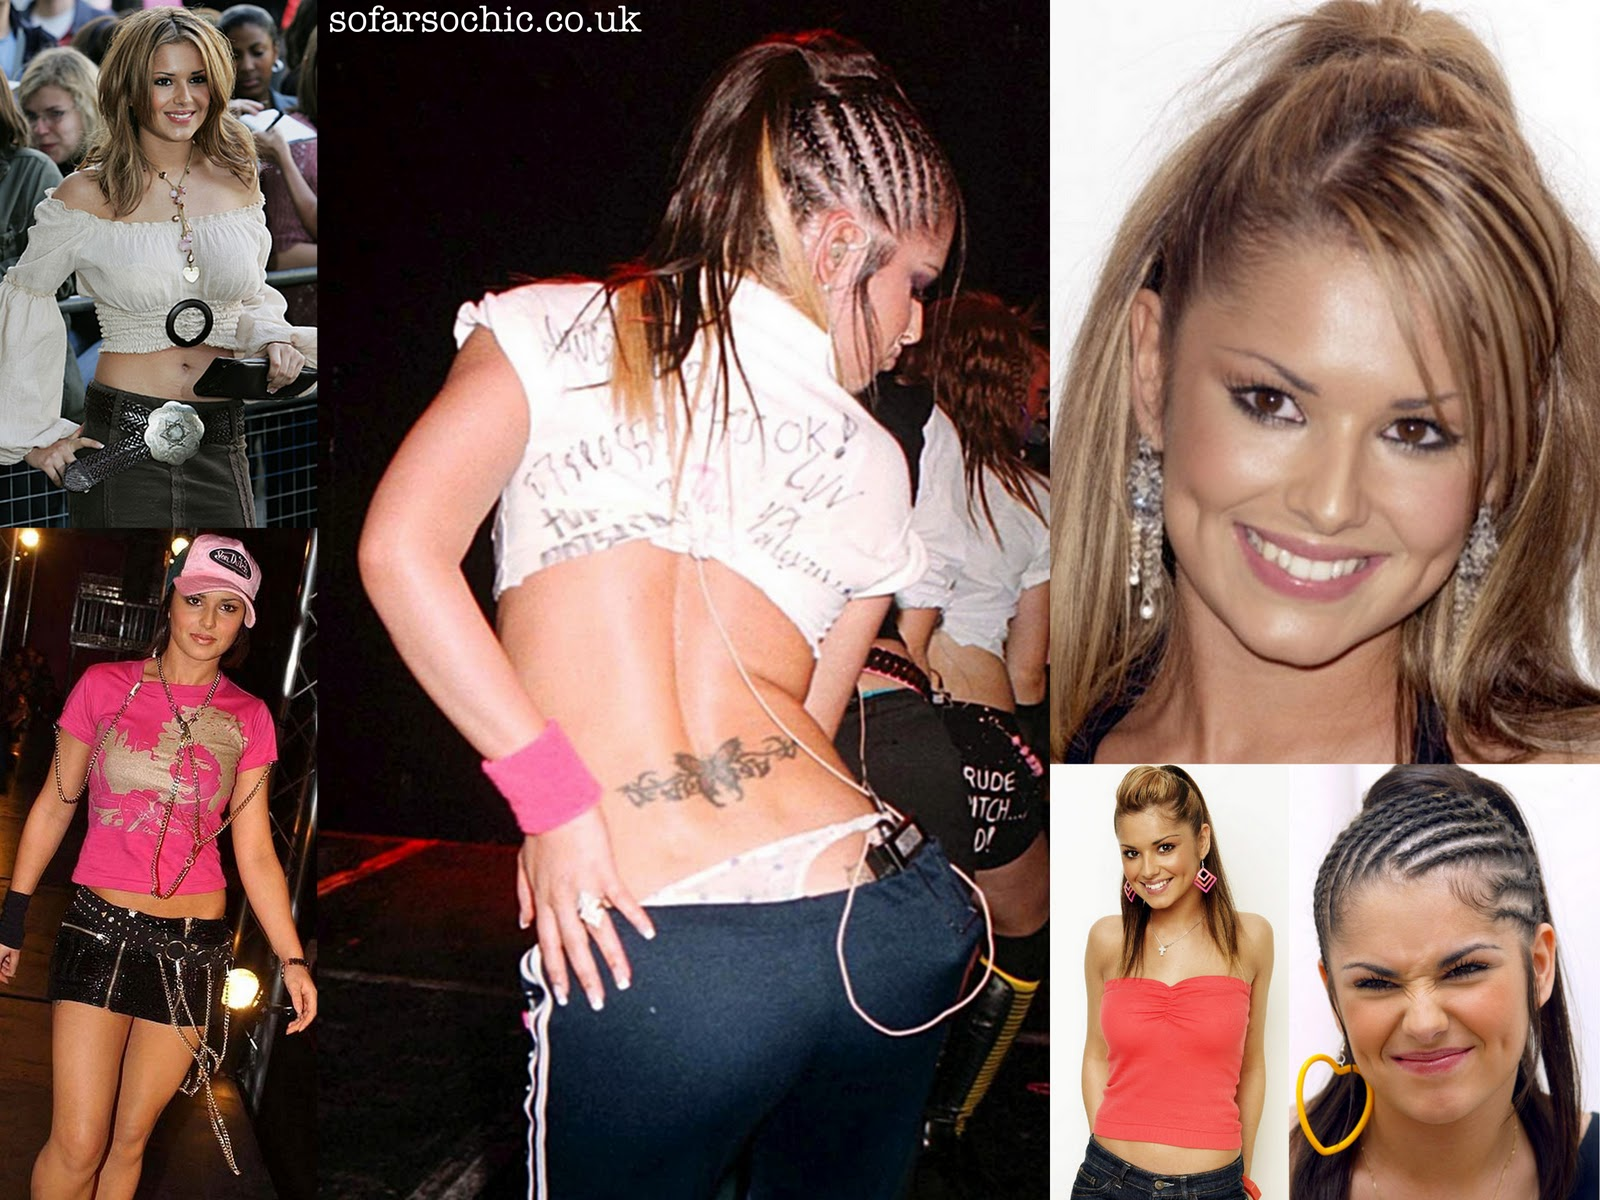 Ass Cheryl Cole nudes (35 foto and video), Topless, Cleavage, Feet, cameltoe 2018